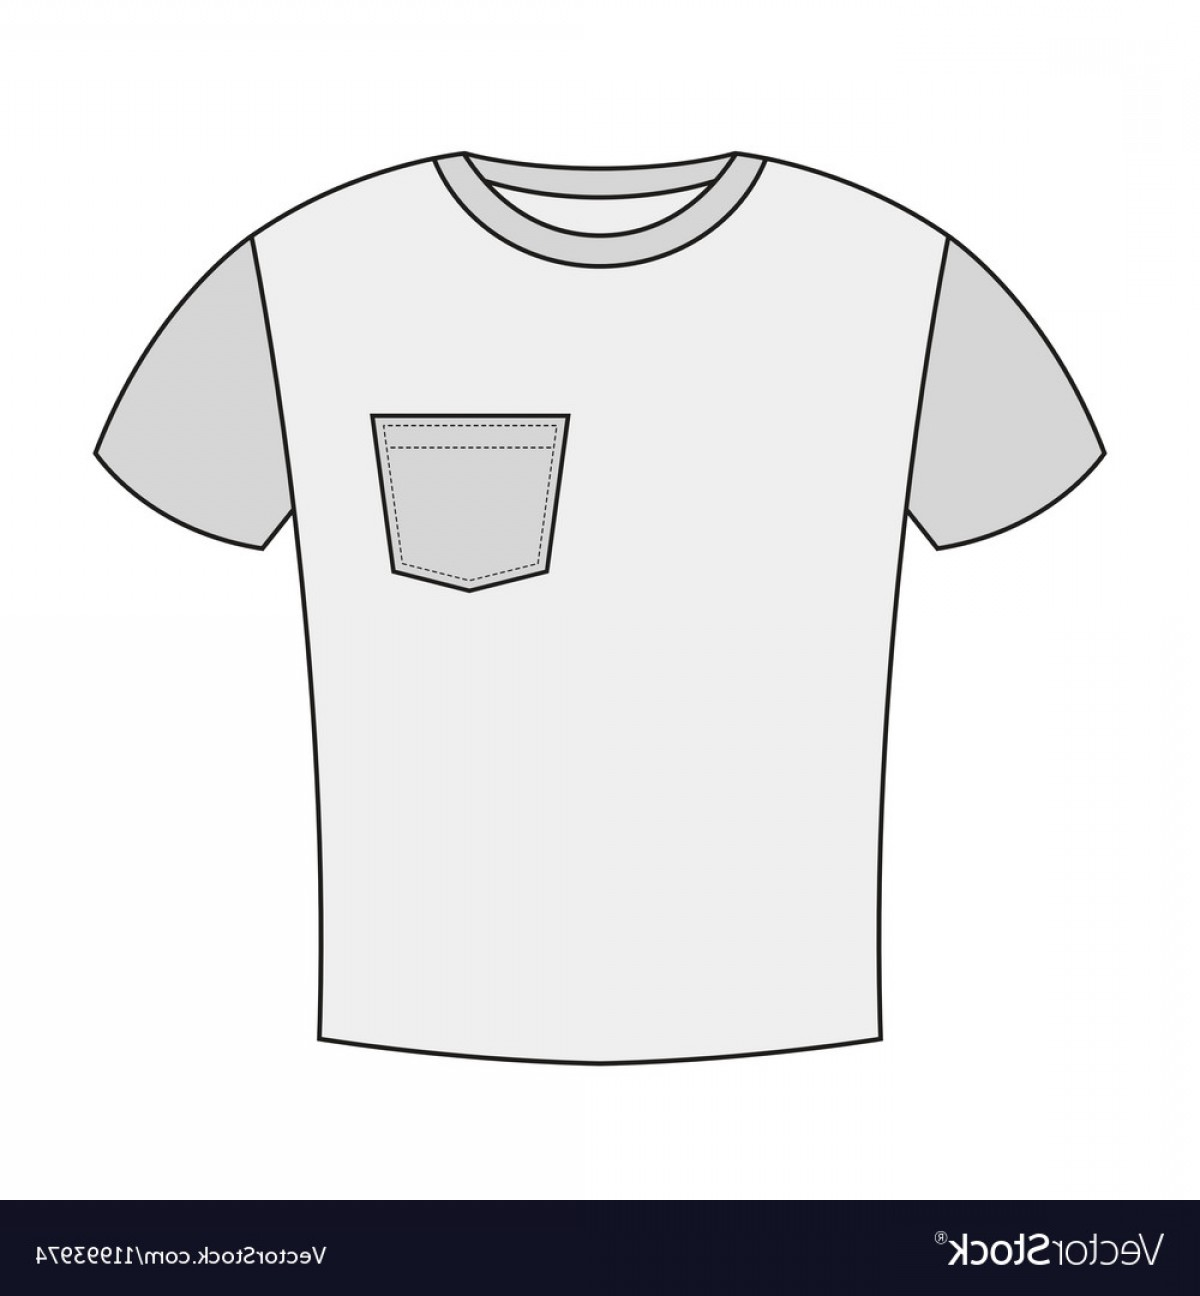 Vector Pocket Silhouette Shirt: T Shirt With A Pocket Isolated On White Vector